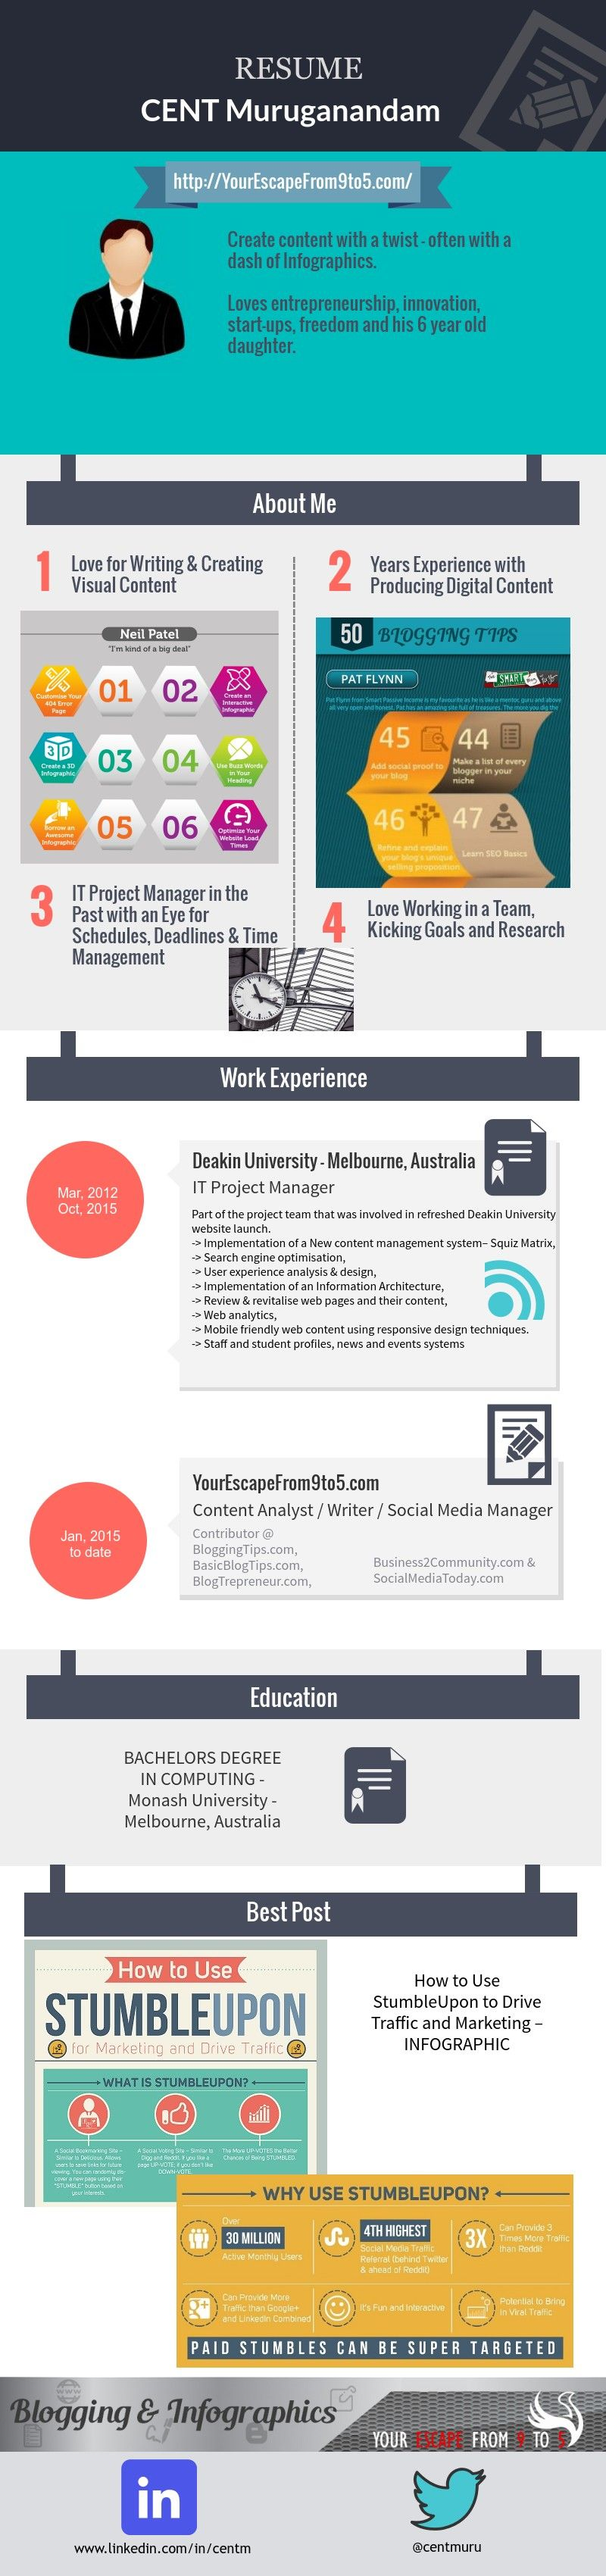 How To Create An Infographic Resume Free Of Cost Infographic Resume How To Create Infographics Infographic